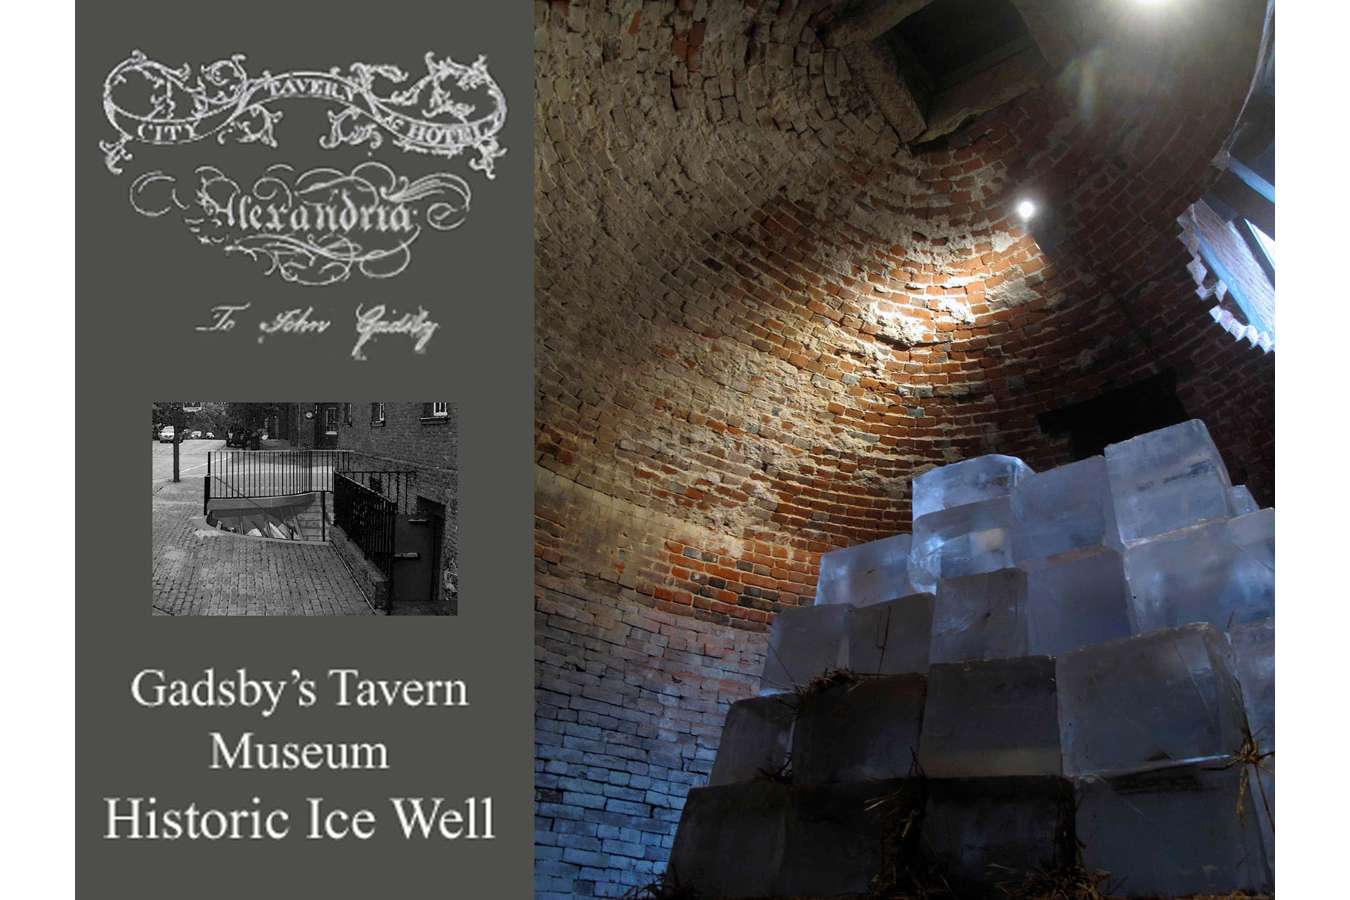 GADS Ice 1p : The Ice Well at Gadsby's Tavern – Loaded with ice for a promotional event